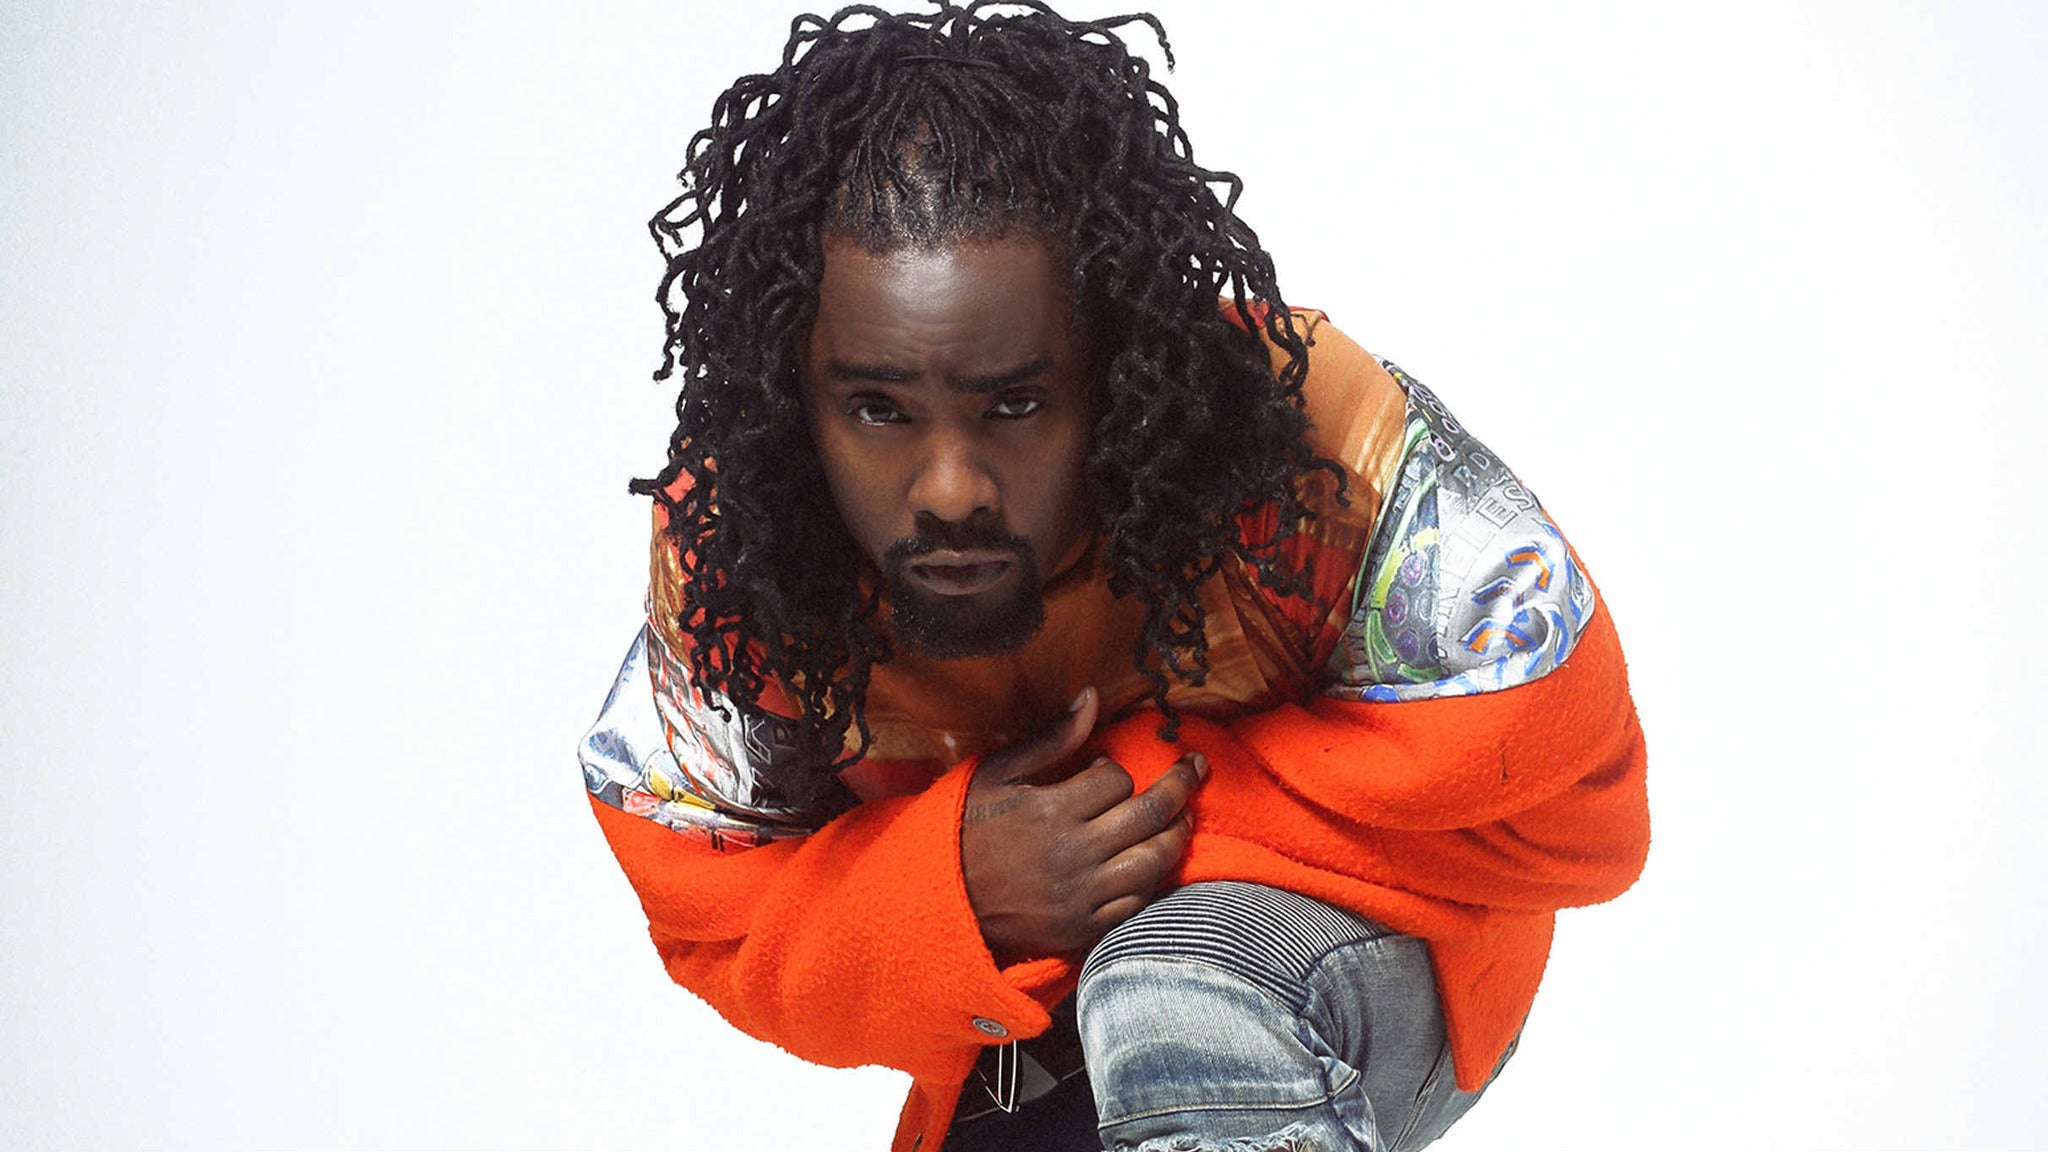 Dussepalooza featuring Wale with Music By: Mo Beatz, DJ BJ (From 107.5